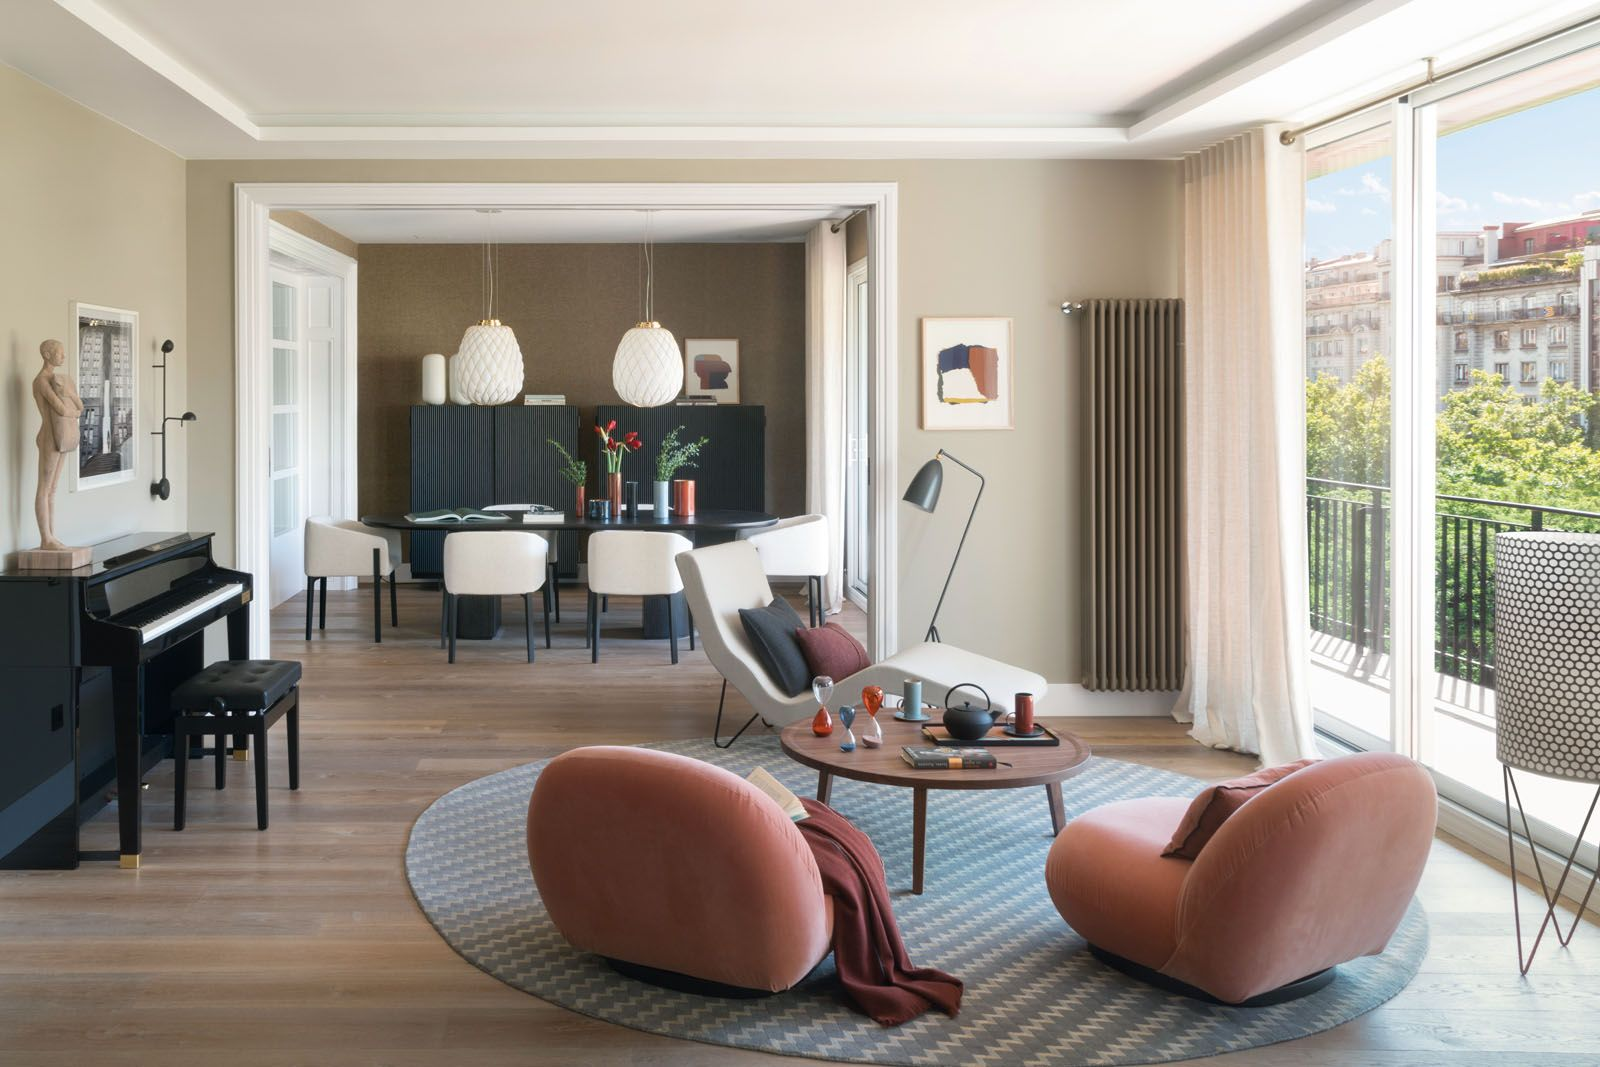 The reading lounge features floor lamps, armchairs and an ottoman from Gubi, a BSB Alfombras rug and a Gervasoni side table; abstract art and sculptures from Galería Víctor Lope Arte Contemporáneo and Galeria Miquel Alzueta complement the apartment's understated interior scheme